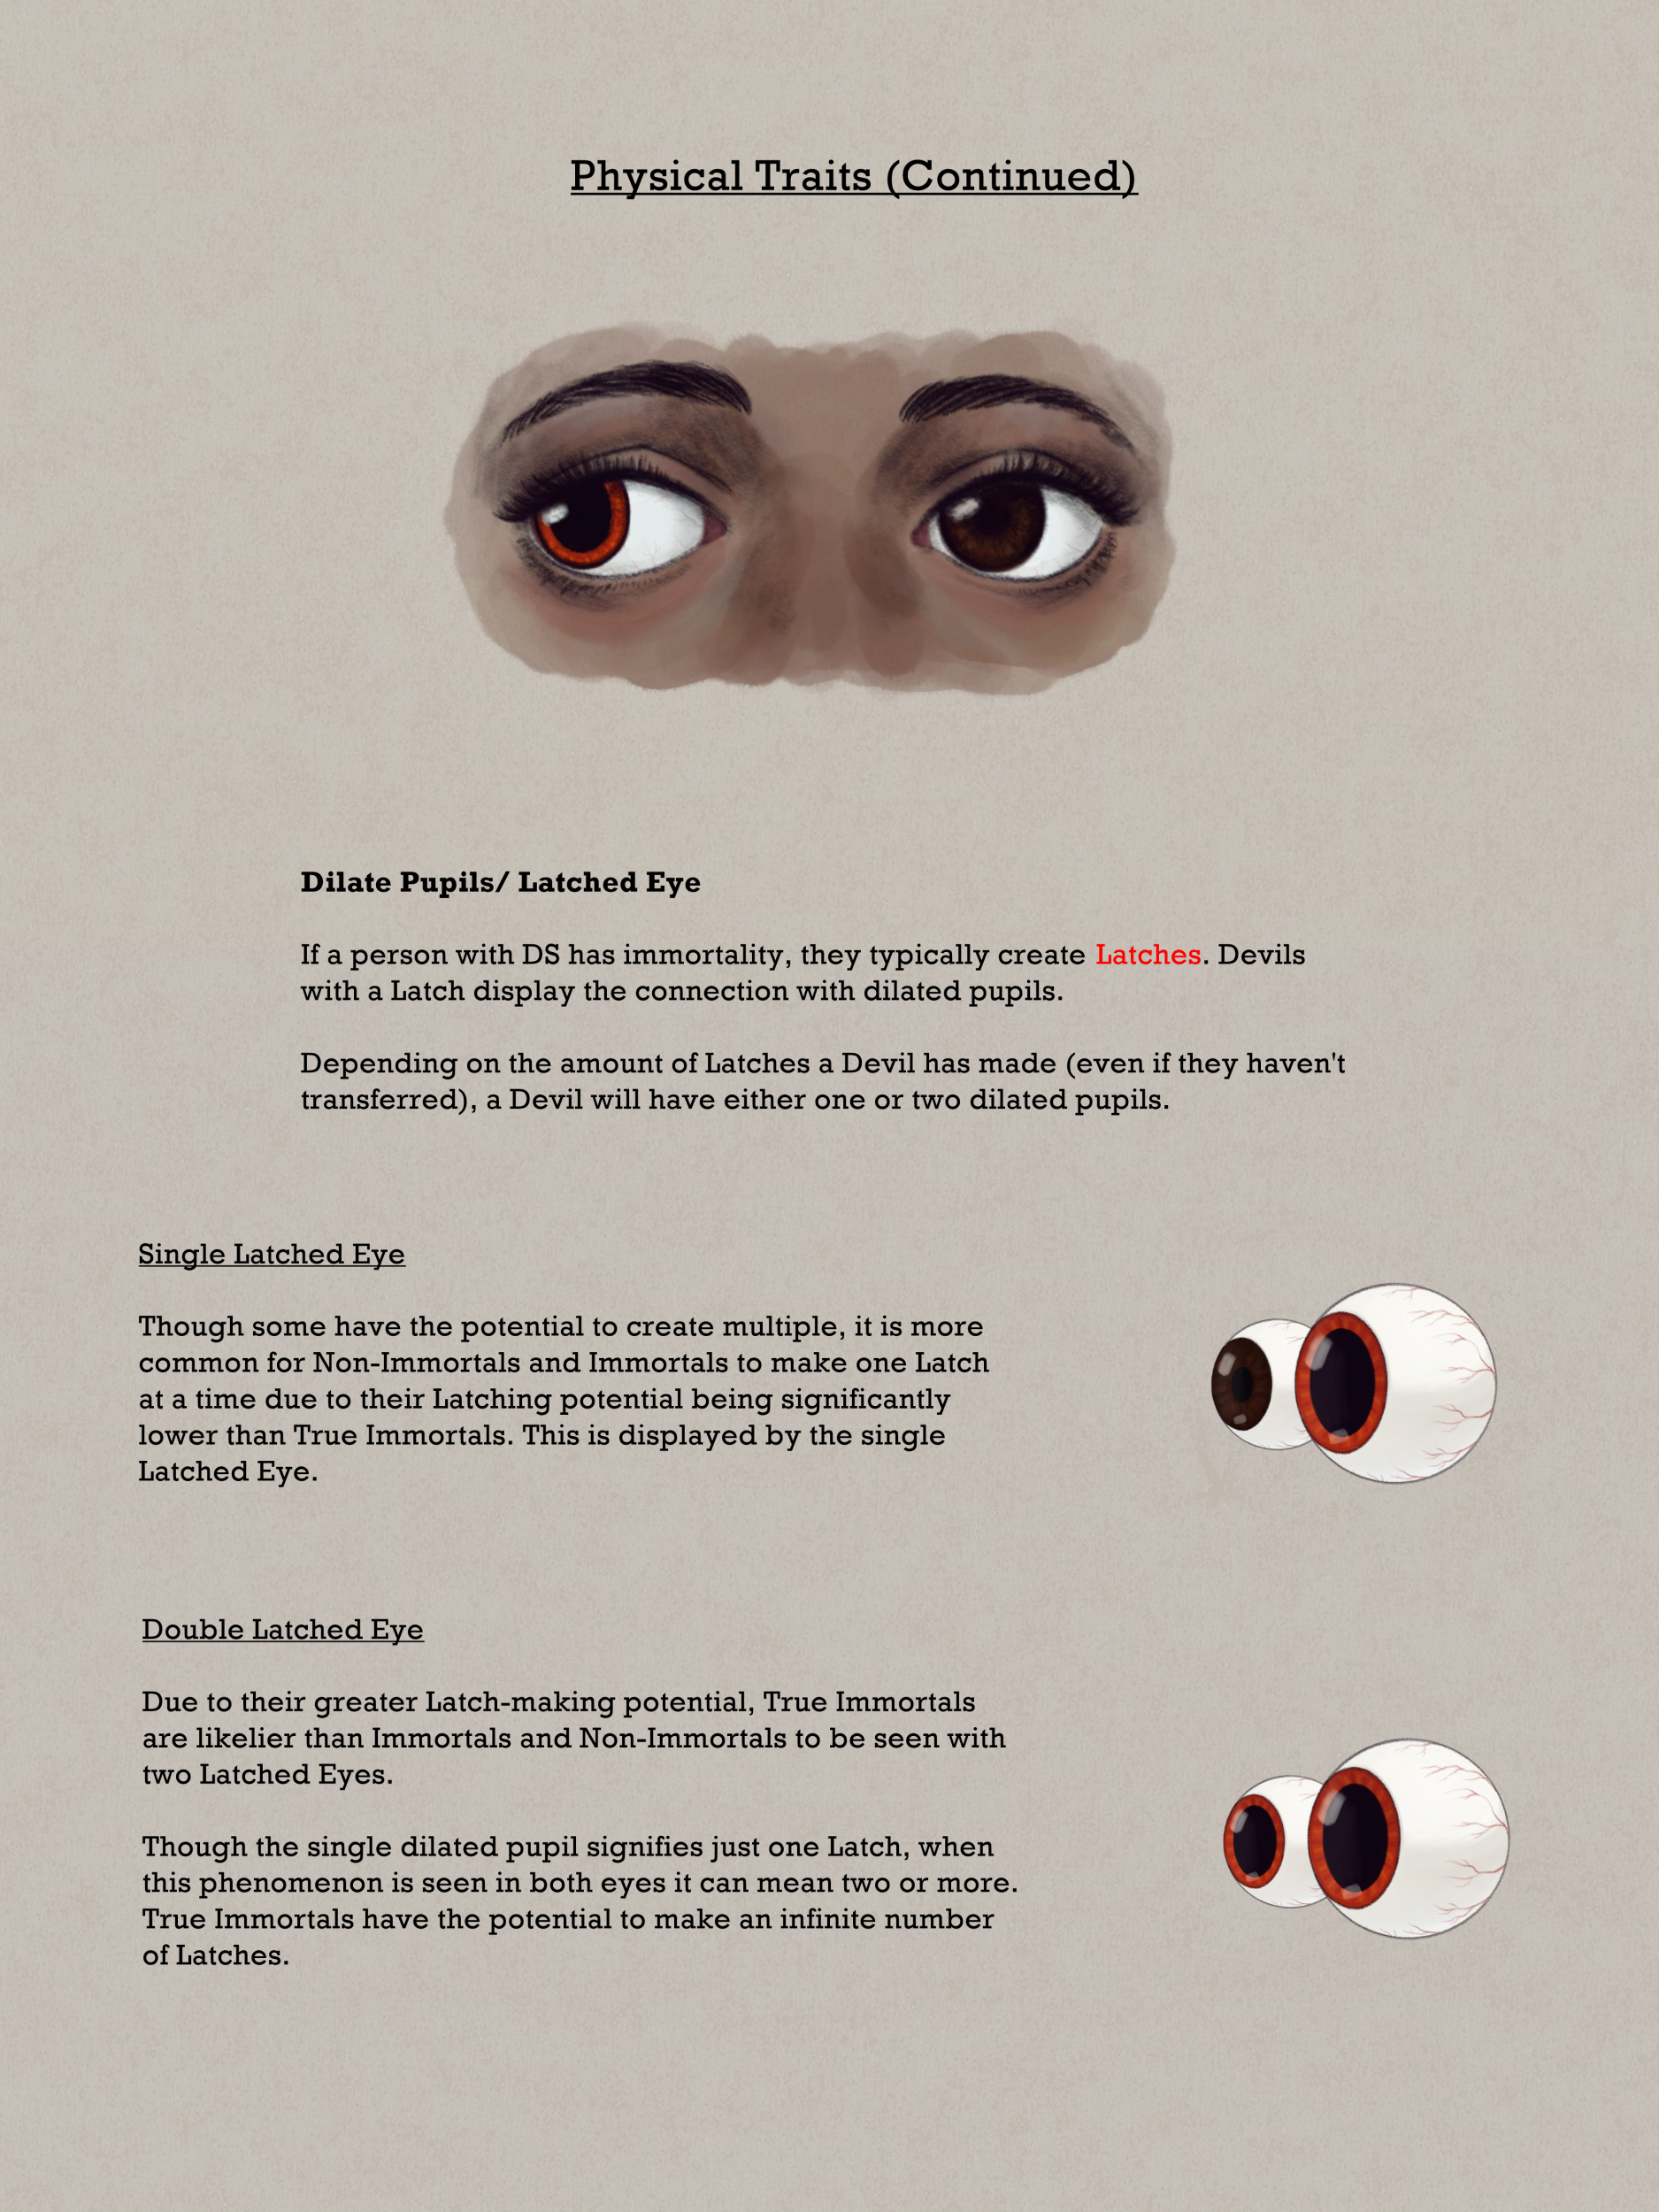 Encyclopedia-Devil-Page 3-Physical Traits Page 2